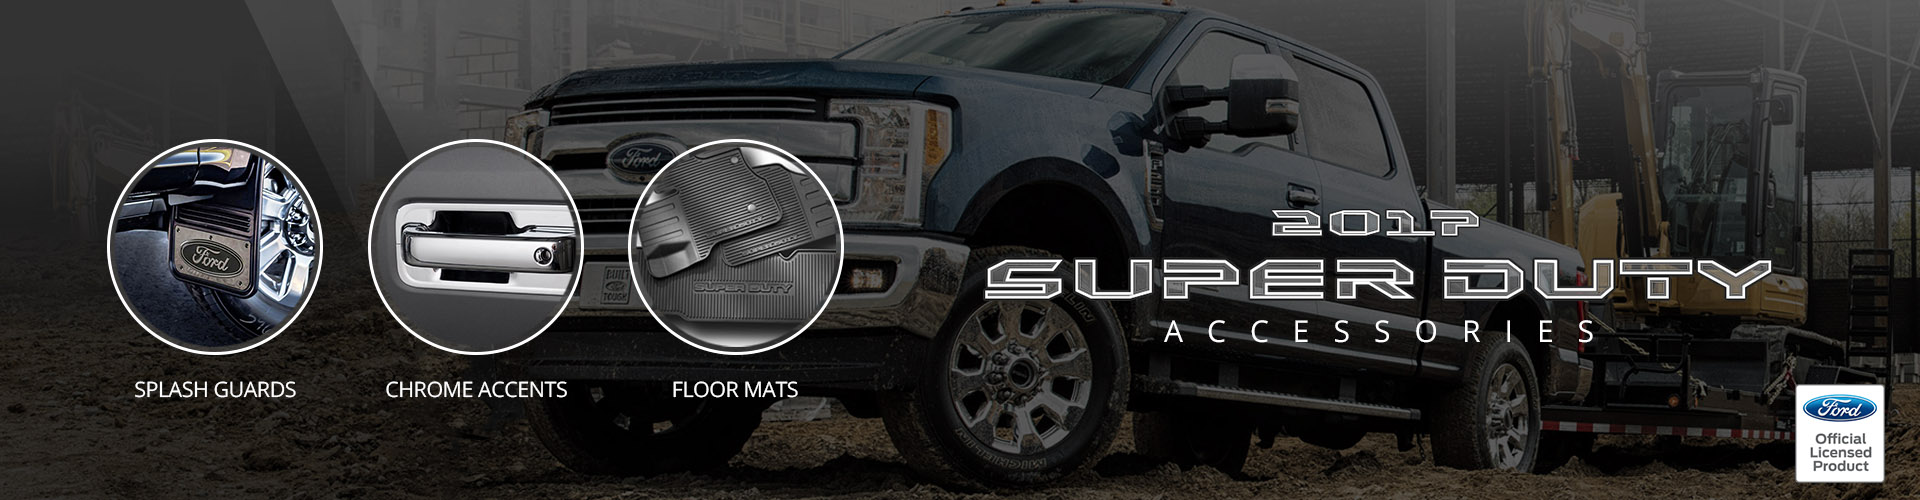 2017 Ford F-250 Super Duty Accessories